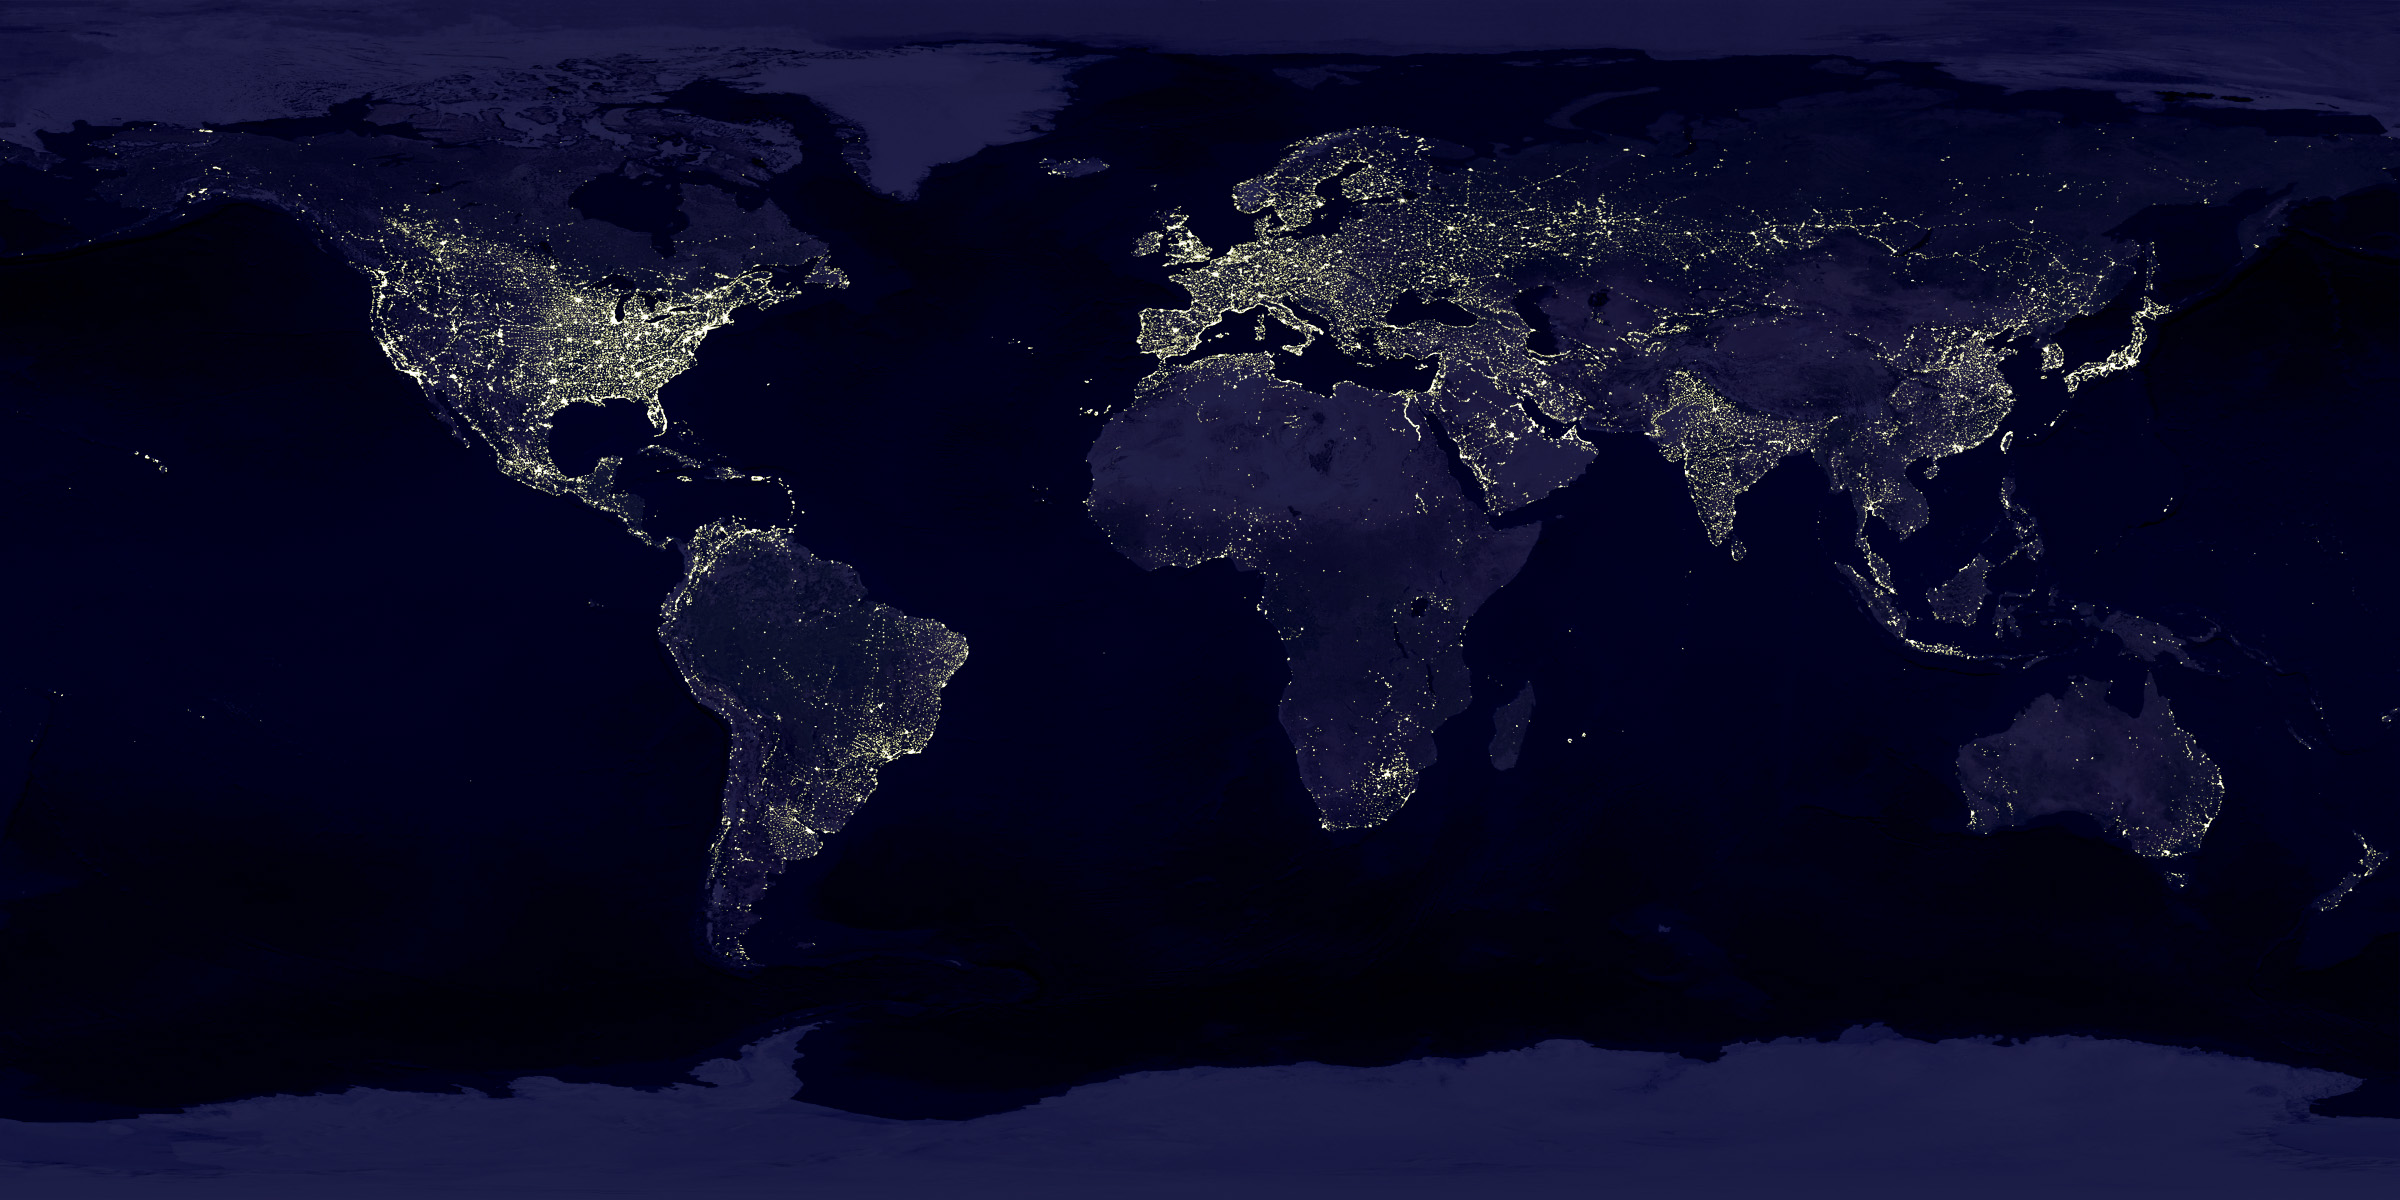 Planisphère nocturne - Data courtesy Marc Imhoff of NASA GSFC and Christopher Elvidge of NOAA NGDC. Image by Craig Mayhew and Robert Simmon, NASA GSFC